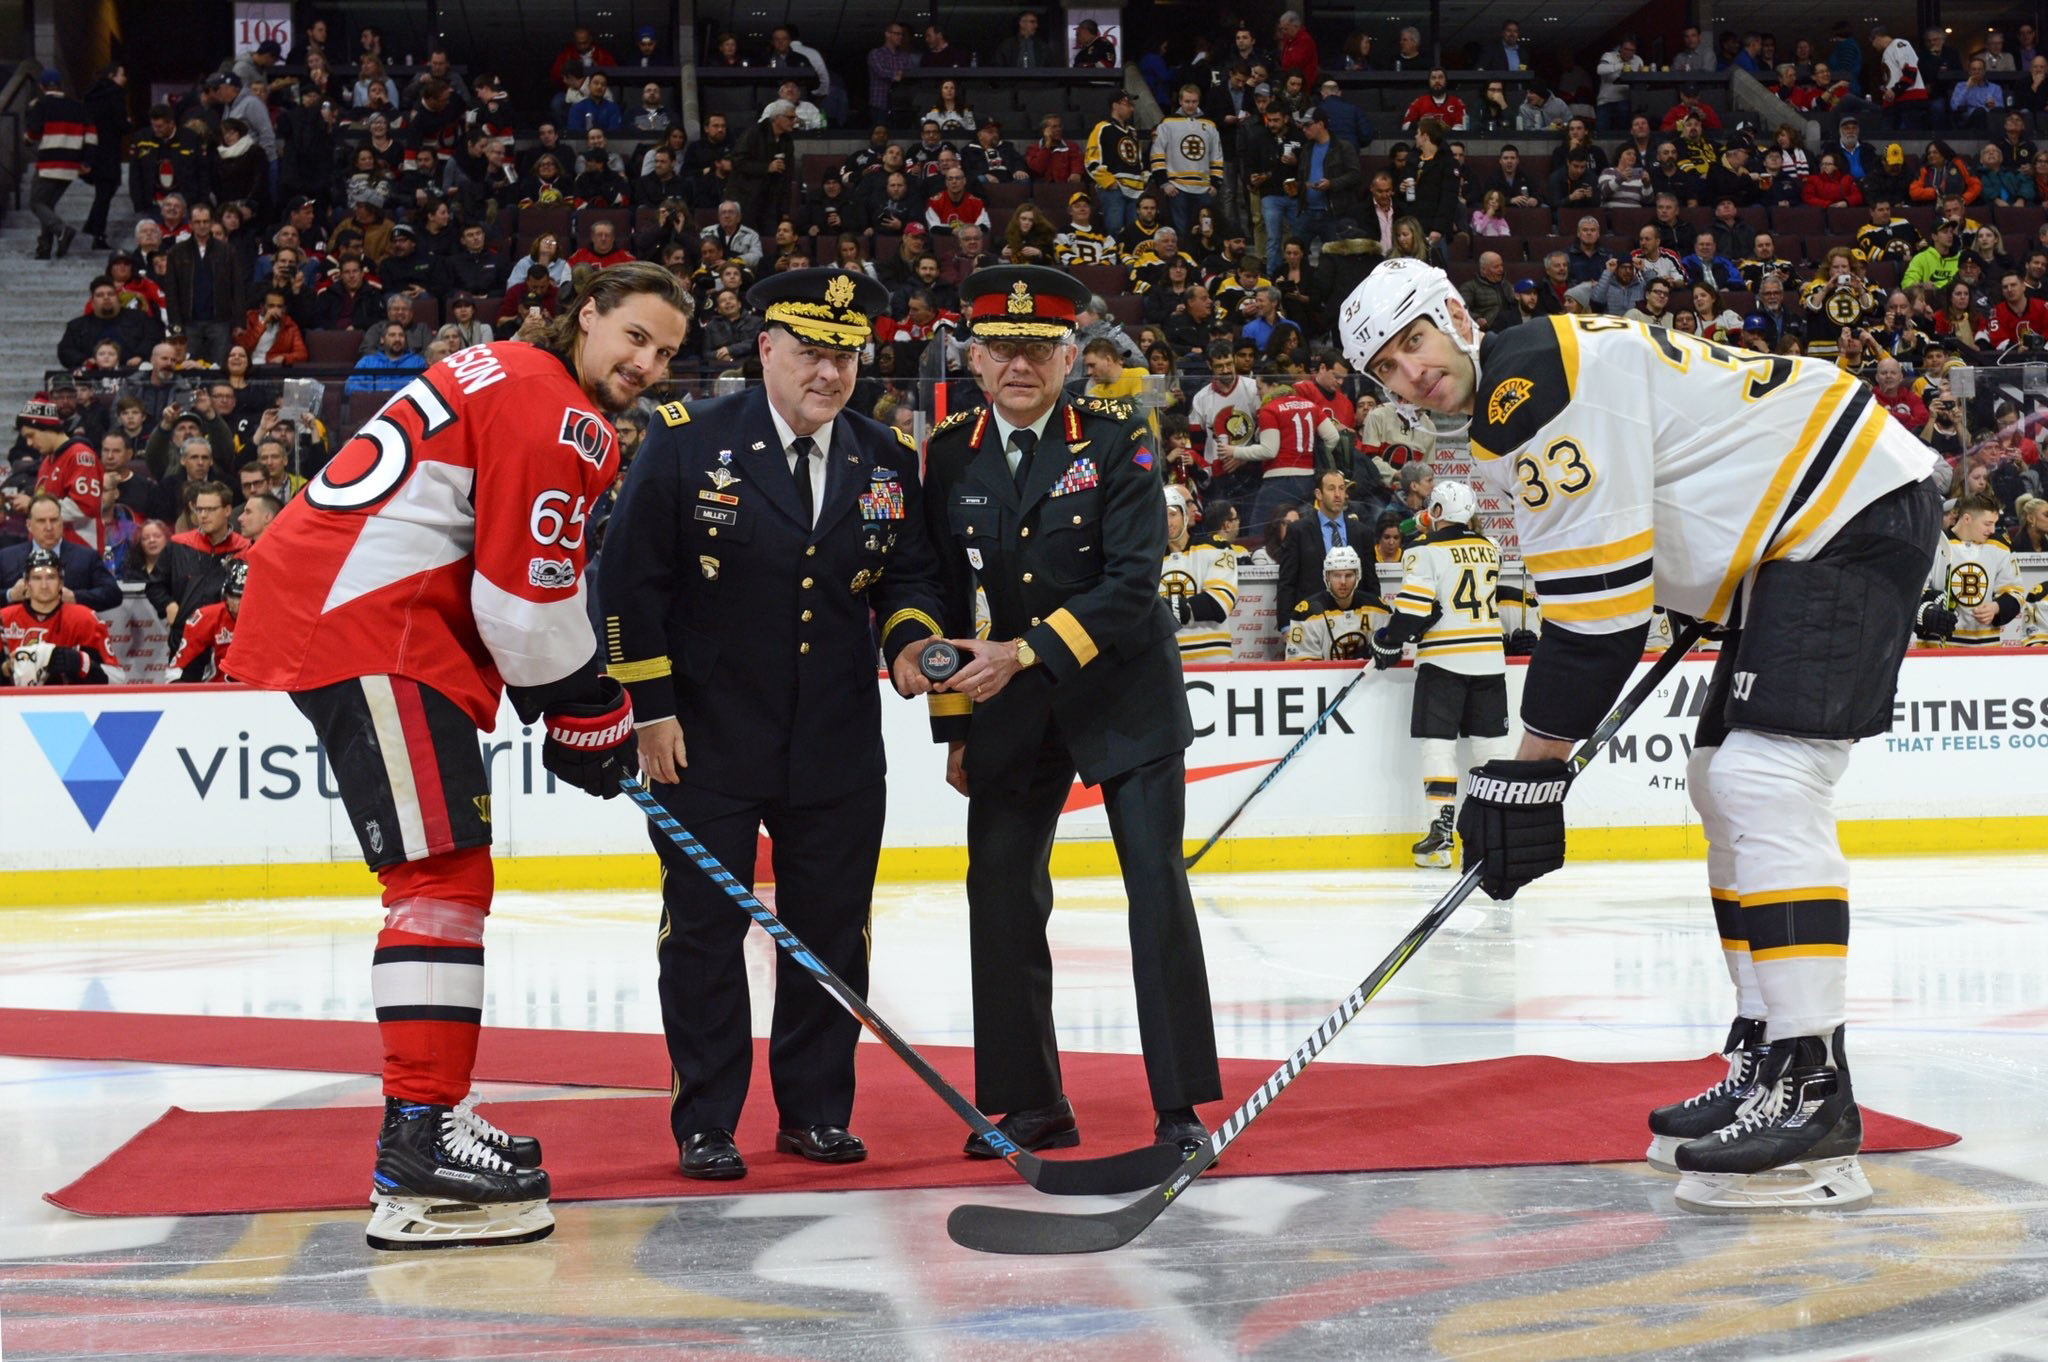 General Mark Milley, Chief of Staff, United States Army (centre-left) and Lieutenant-General Paul Wynnyk, Commander Canadian Army (centre-right) prepare to drop the puck for team captains, Erik Karlsson (left), and Zdeno Chára (right) during the opening ceremonies for the Ottawa Senators vs Boston Bruins hockey game at the Canadian Tire Centre on March 6, 2017. (U.S. Army photo by Sgt. 1st Class Charles Burden)